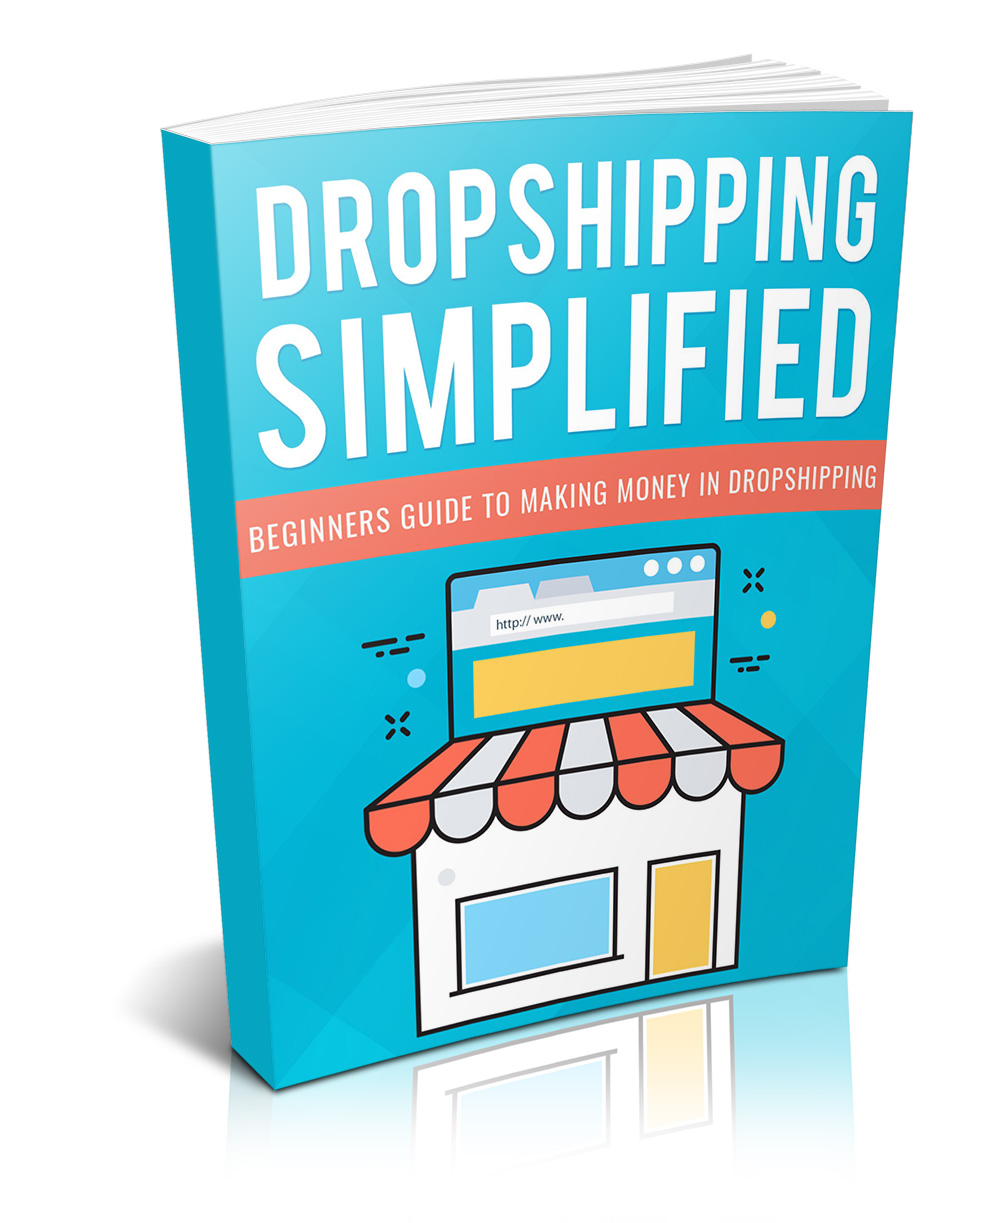 Dropshipping Simplified Dropshipping Simplified